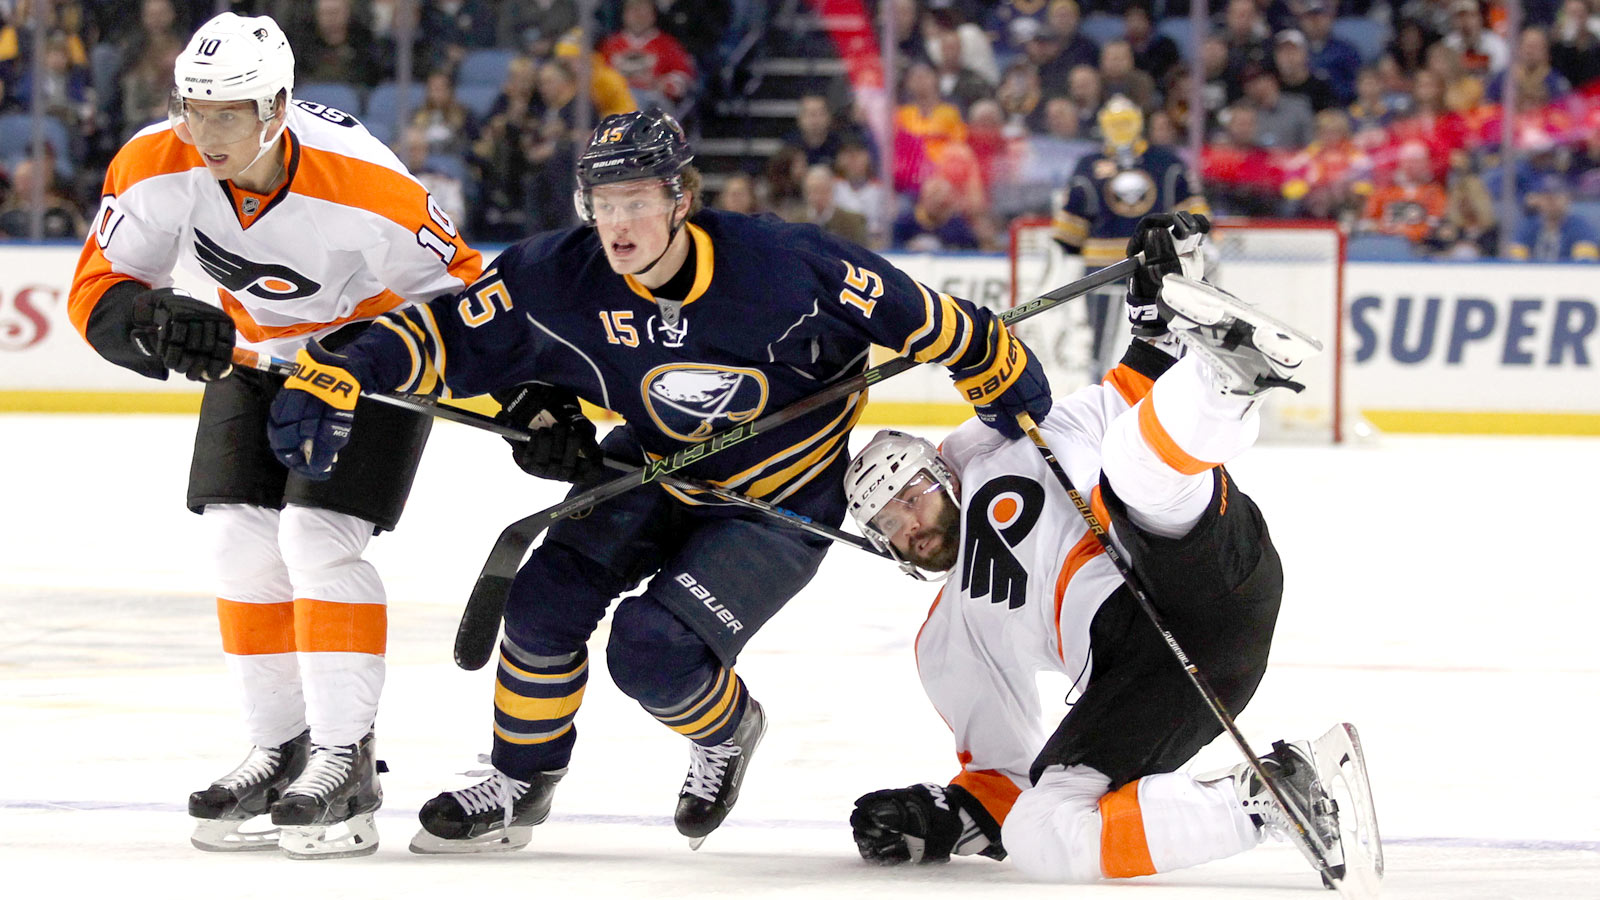 Eichel provides 'electricity' as Sabres charge past Flyers